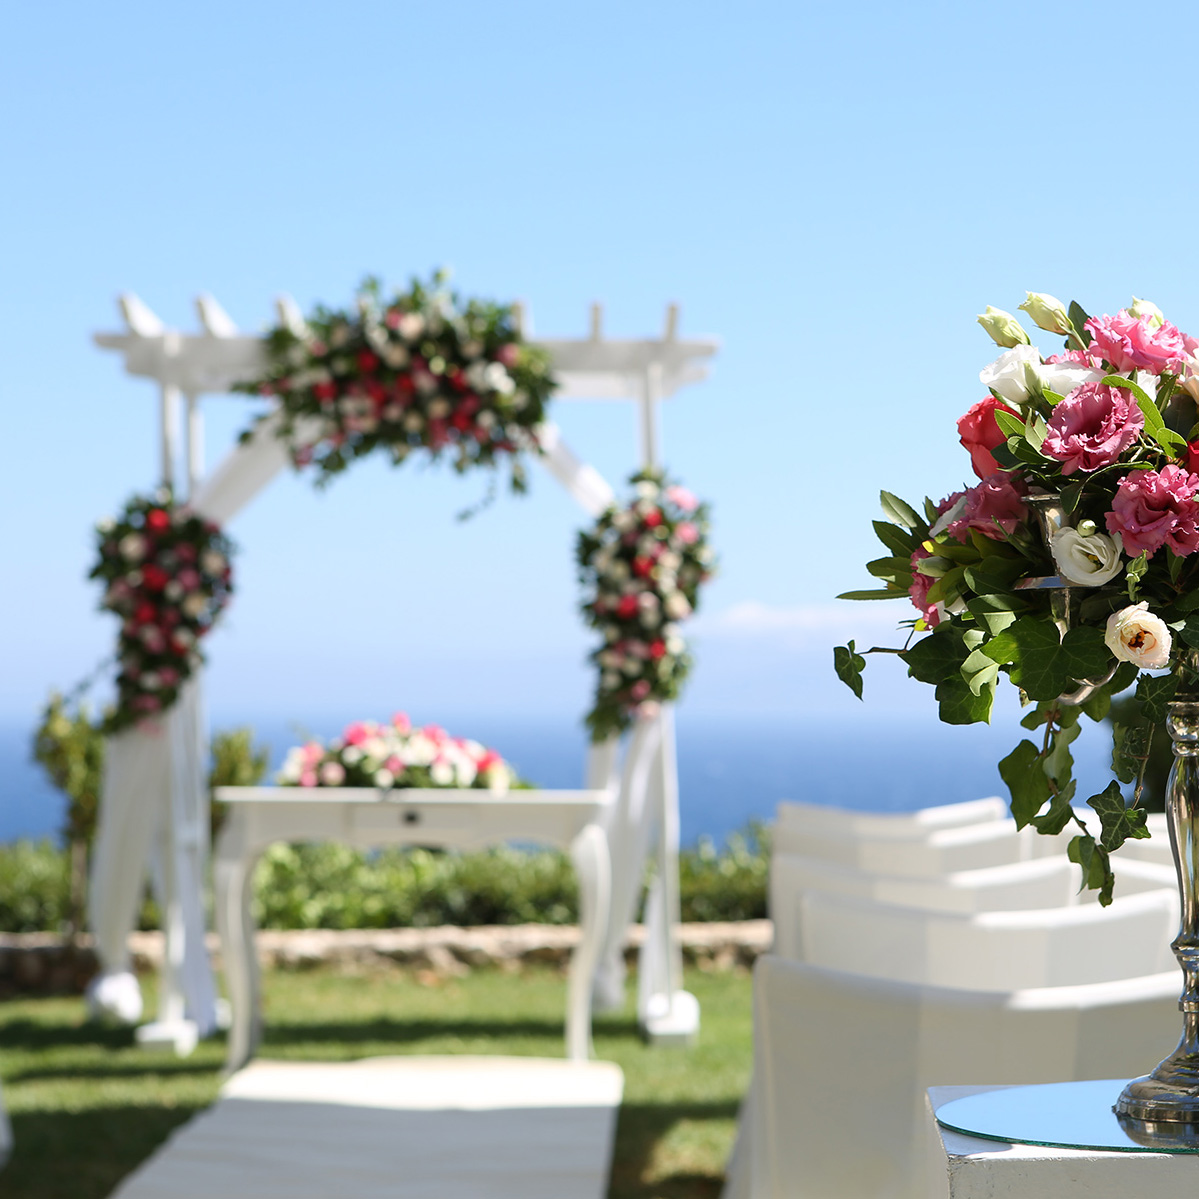 Andromeda Centre Kefalonia | Kefalonia Wedding Venues | Kefalonia Weddings  | Kefalonia Weddings Planner | Wedding Receptions Kefalonia | Kefalonia Wedding Ceremonies Kefalonia Wedding Restaurants